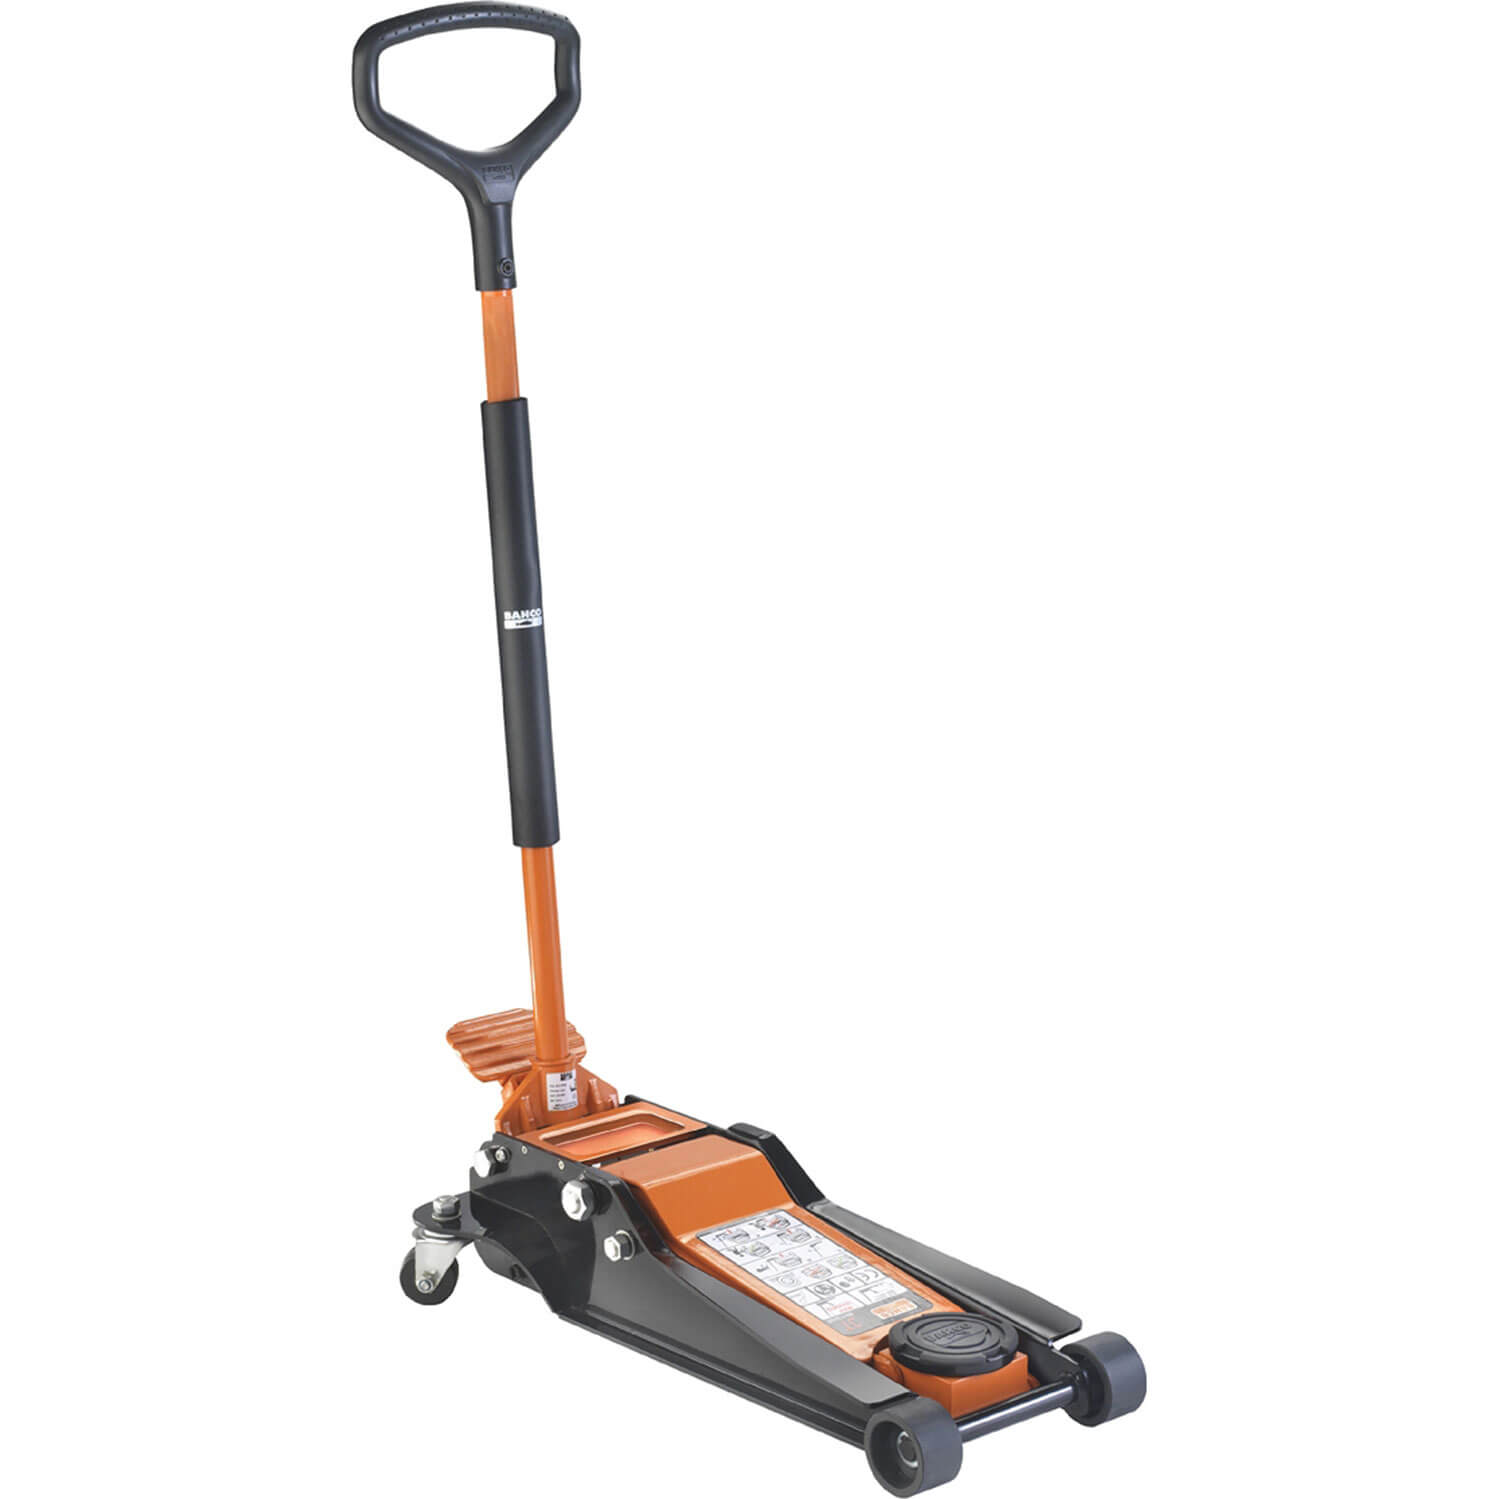 Bahco Low Entry Trolley Jack 3 Tonne